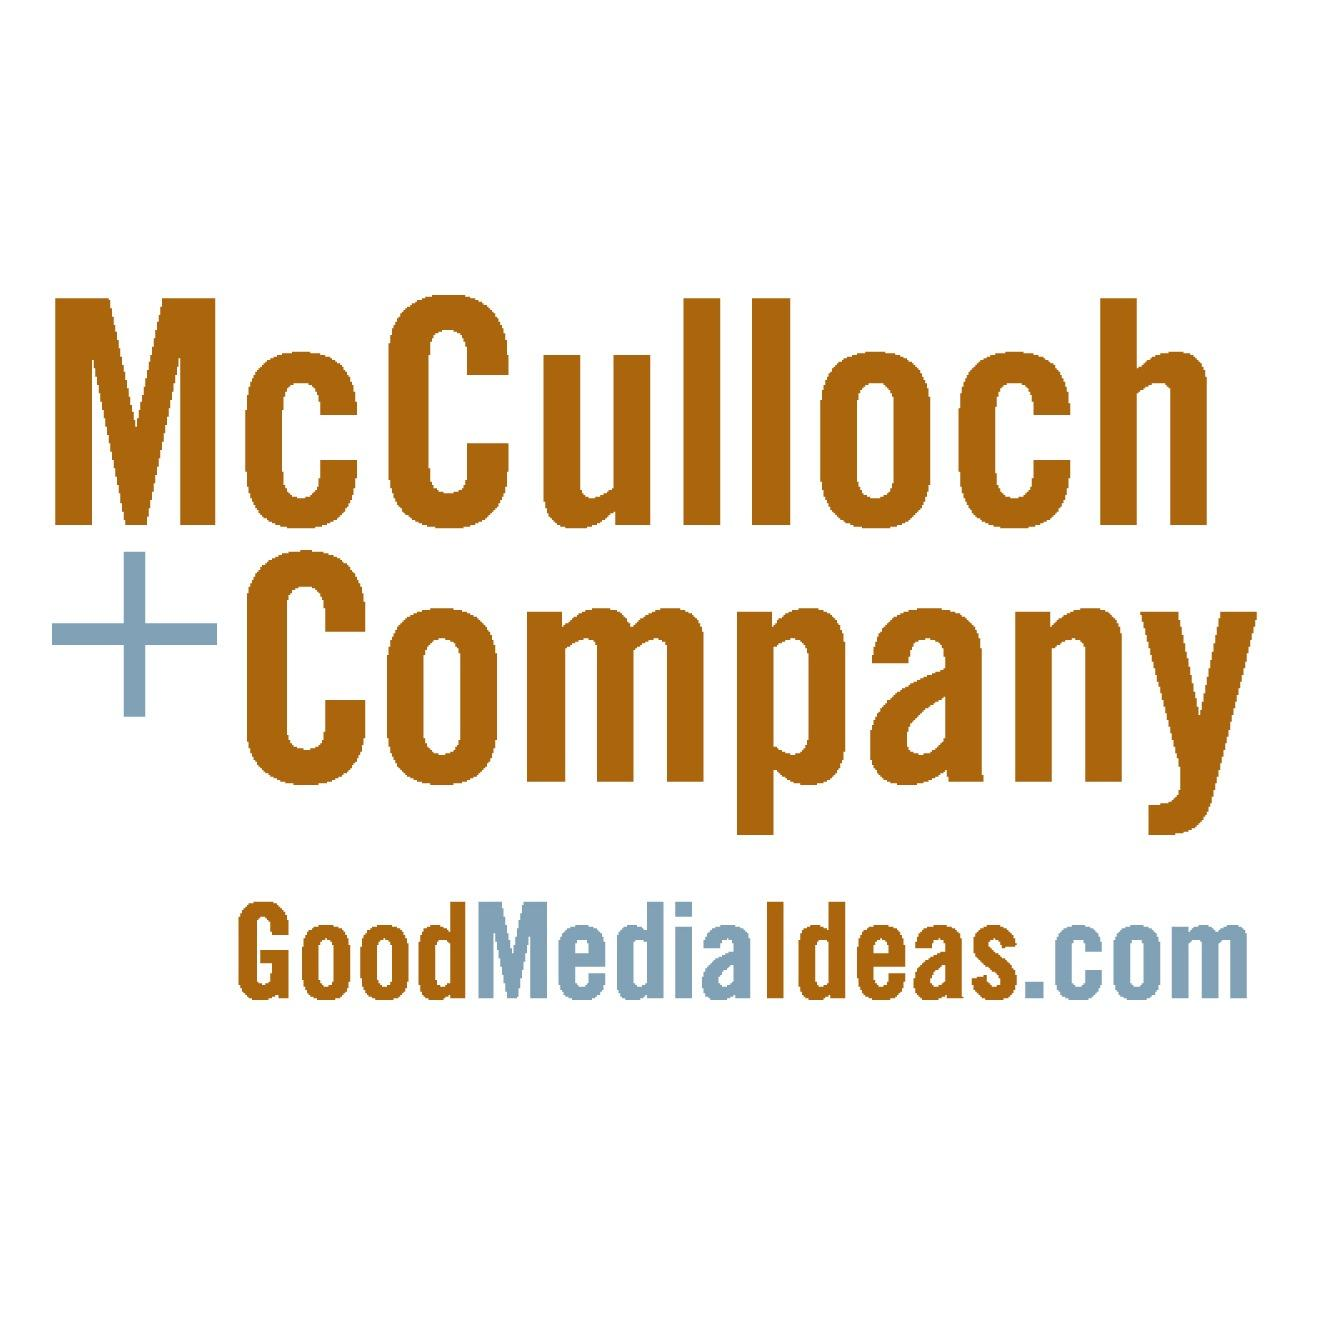 McCulloch+Company, Inc. - Roswell, GA - Advertising Agencies & Public Relations